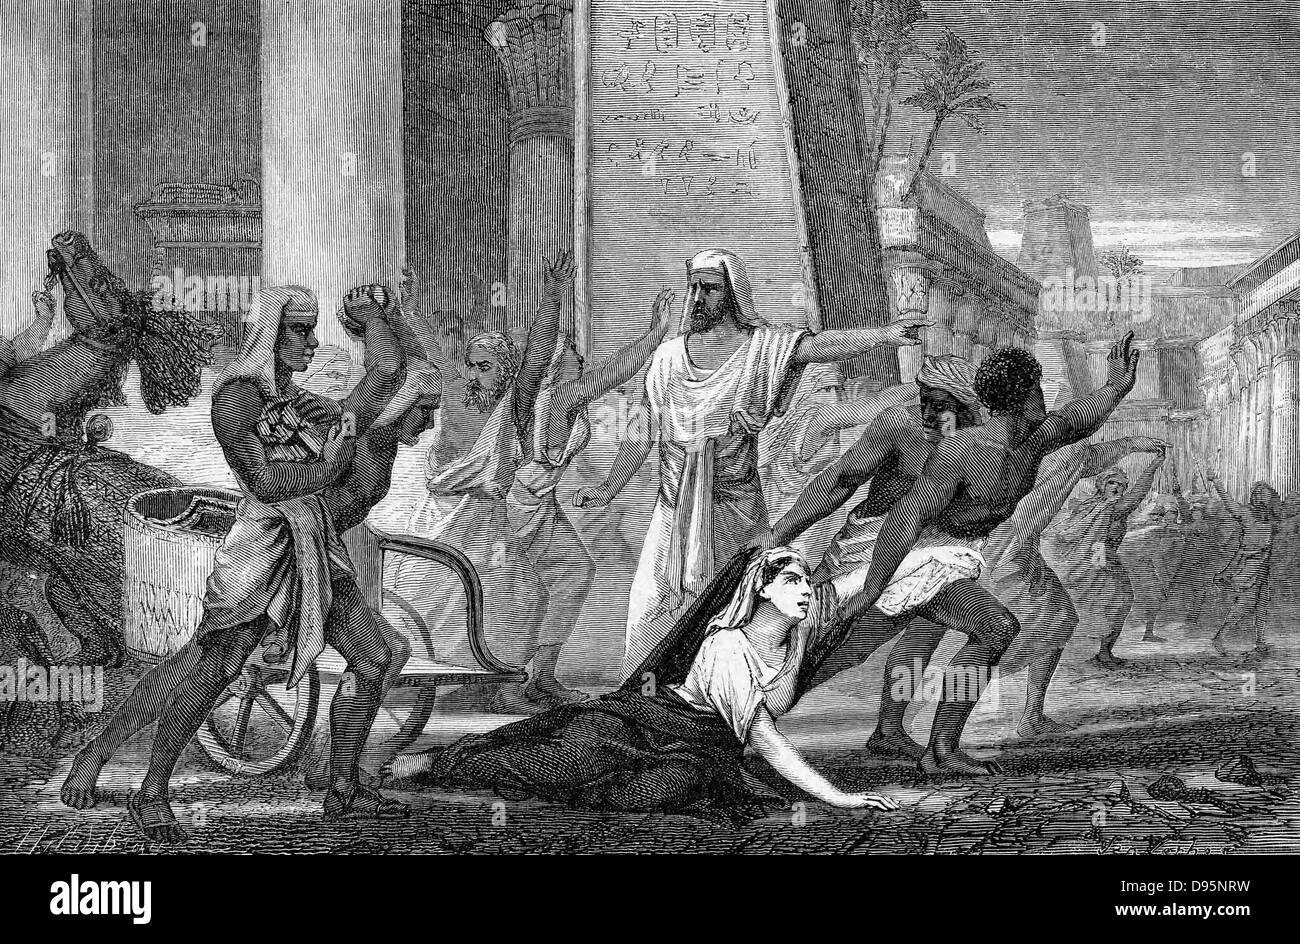 Hypatia (c370-415) mathematician and philosopher (Neoplatonist) murdered by followers of Cyril, Patriarch of Alexandria. - Stock Image